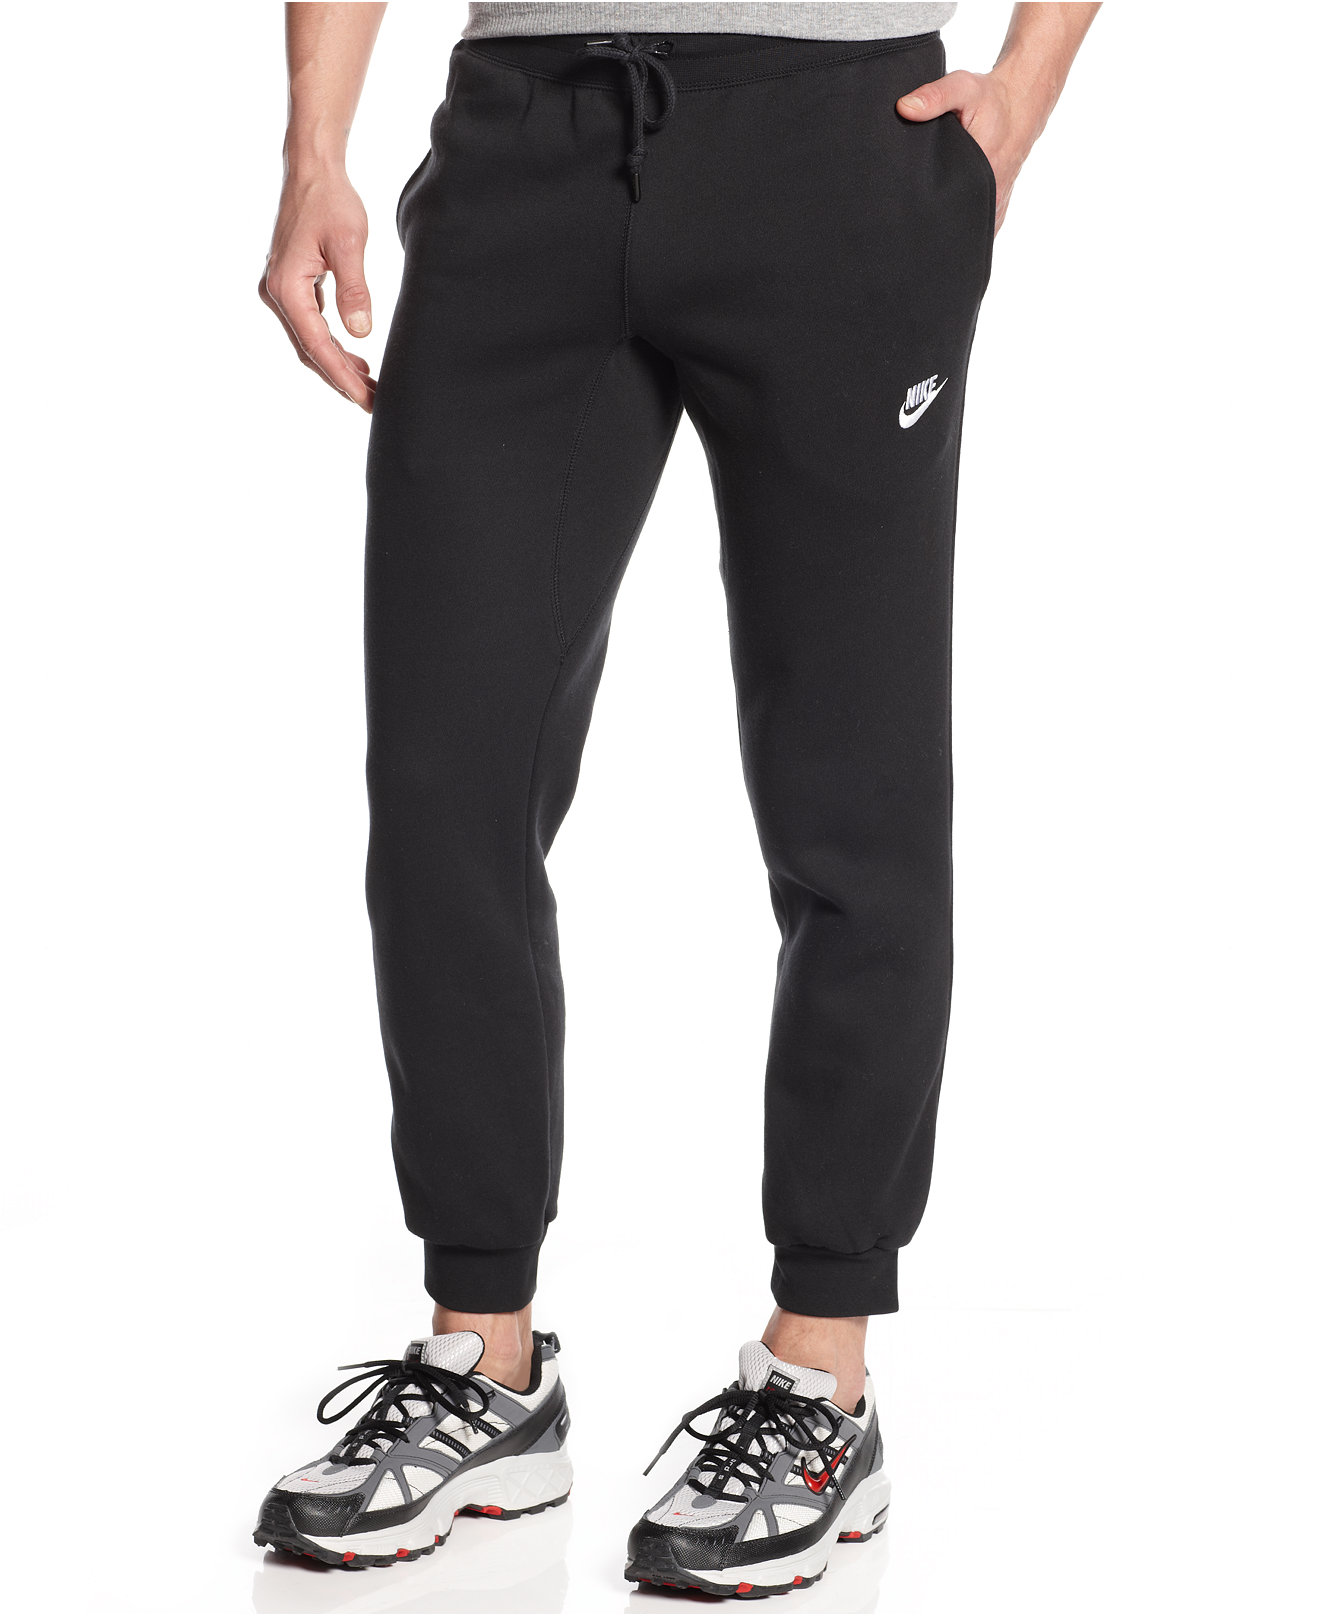 Shop online for Men's Joggers & Sweatpants at grounwhijwgg.cf Find a tapered fit perfect for casual wear. Free Shipping. Free Returns. All the time.